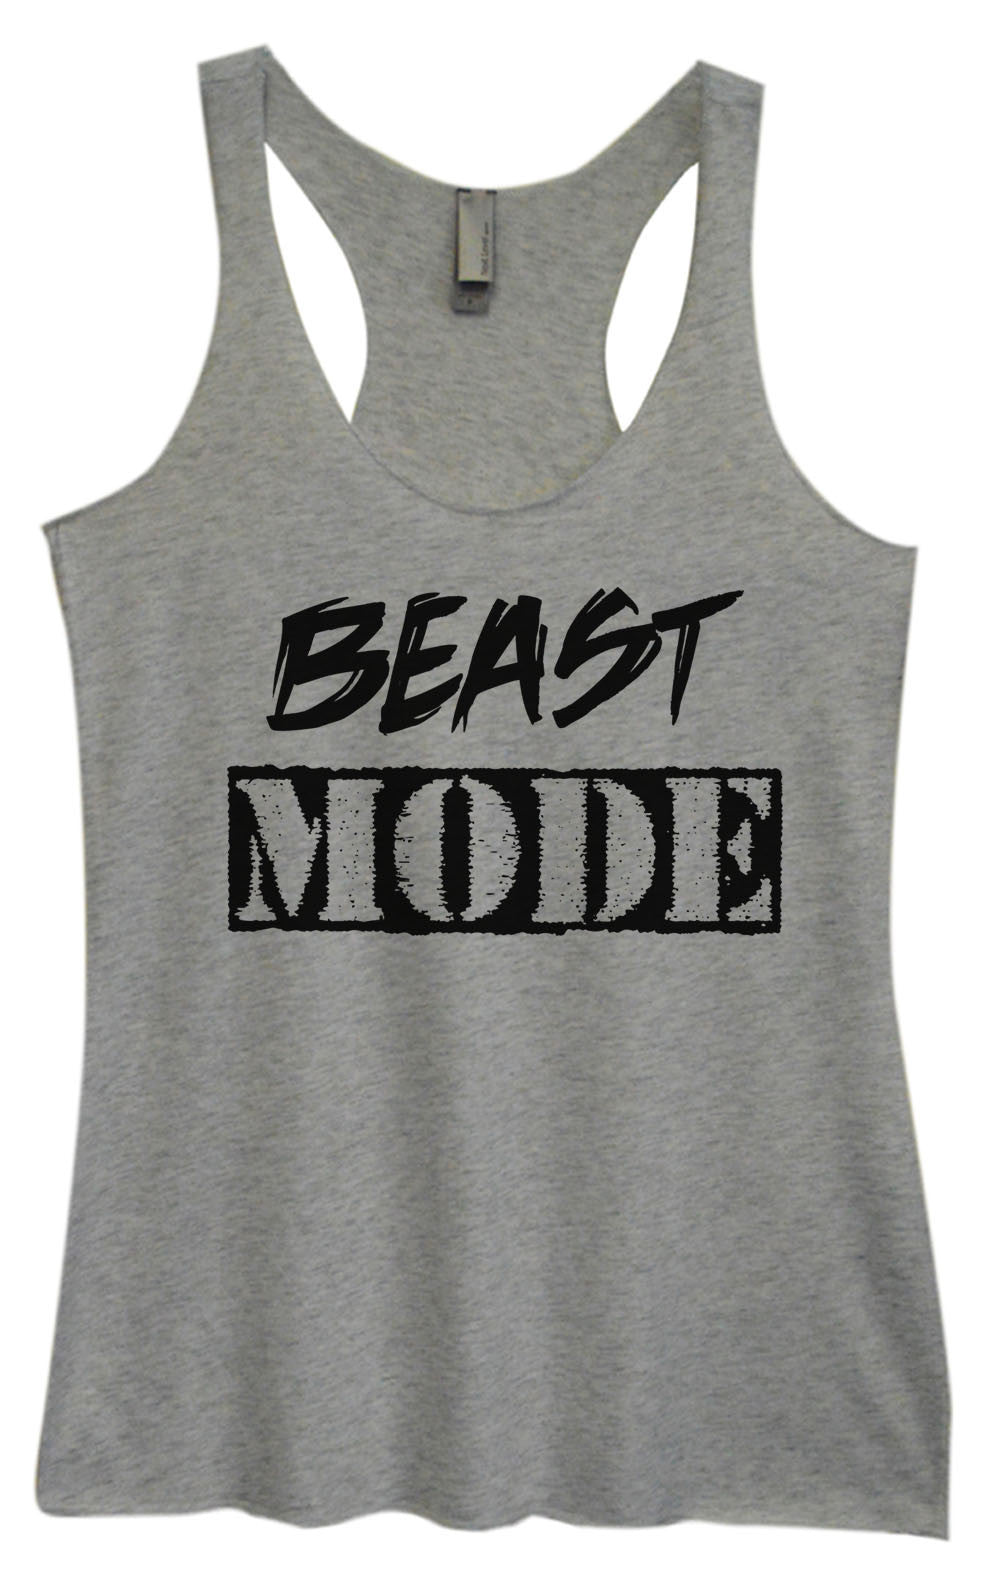 Womens Fashion Triblend Tank Top - Beast Mode - Tri-823 - Funny Shirts Tank Tops Burnouts and Triblends  - 2